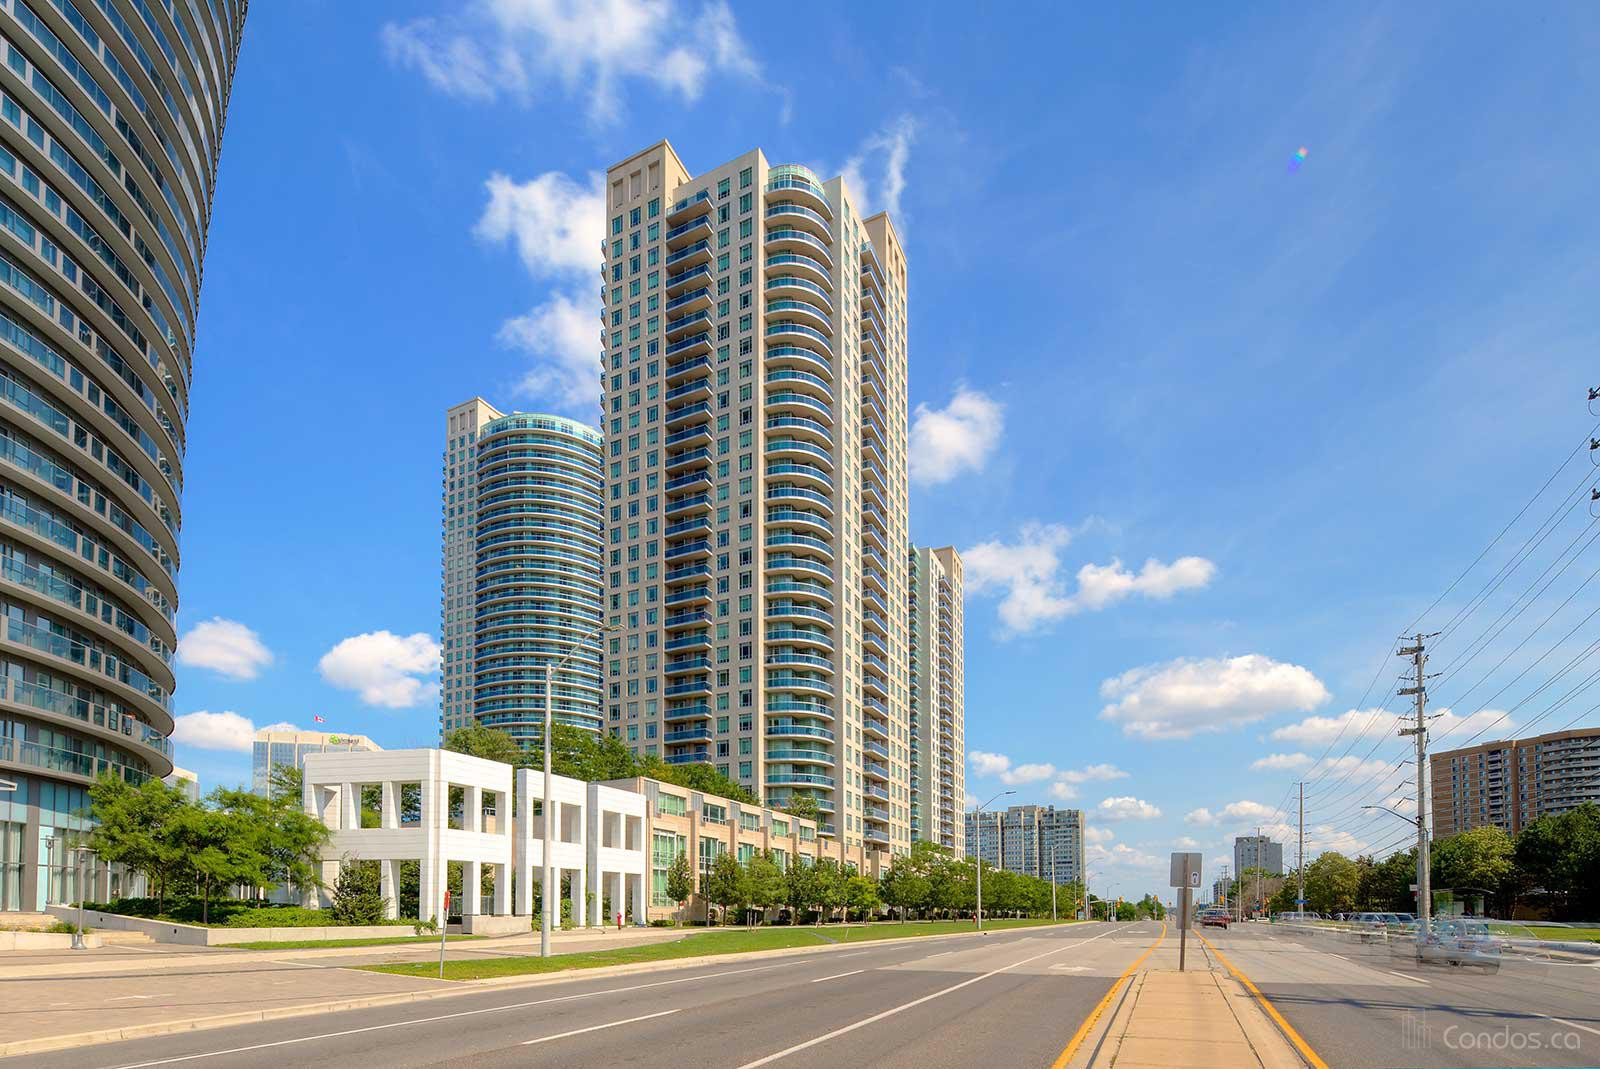 The Absolute Ⅱ at 70 Absolute Ave, Mississauga 1